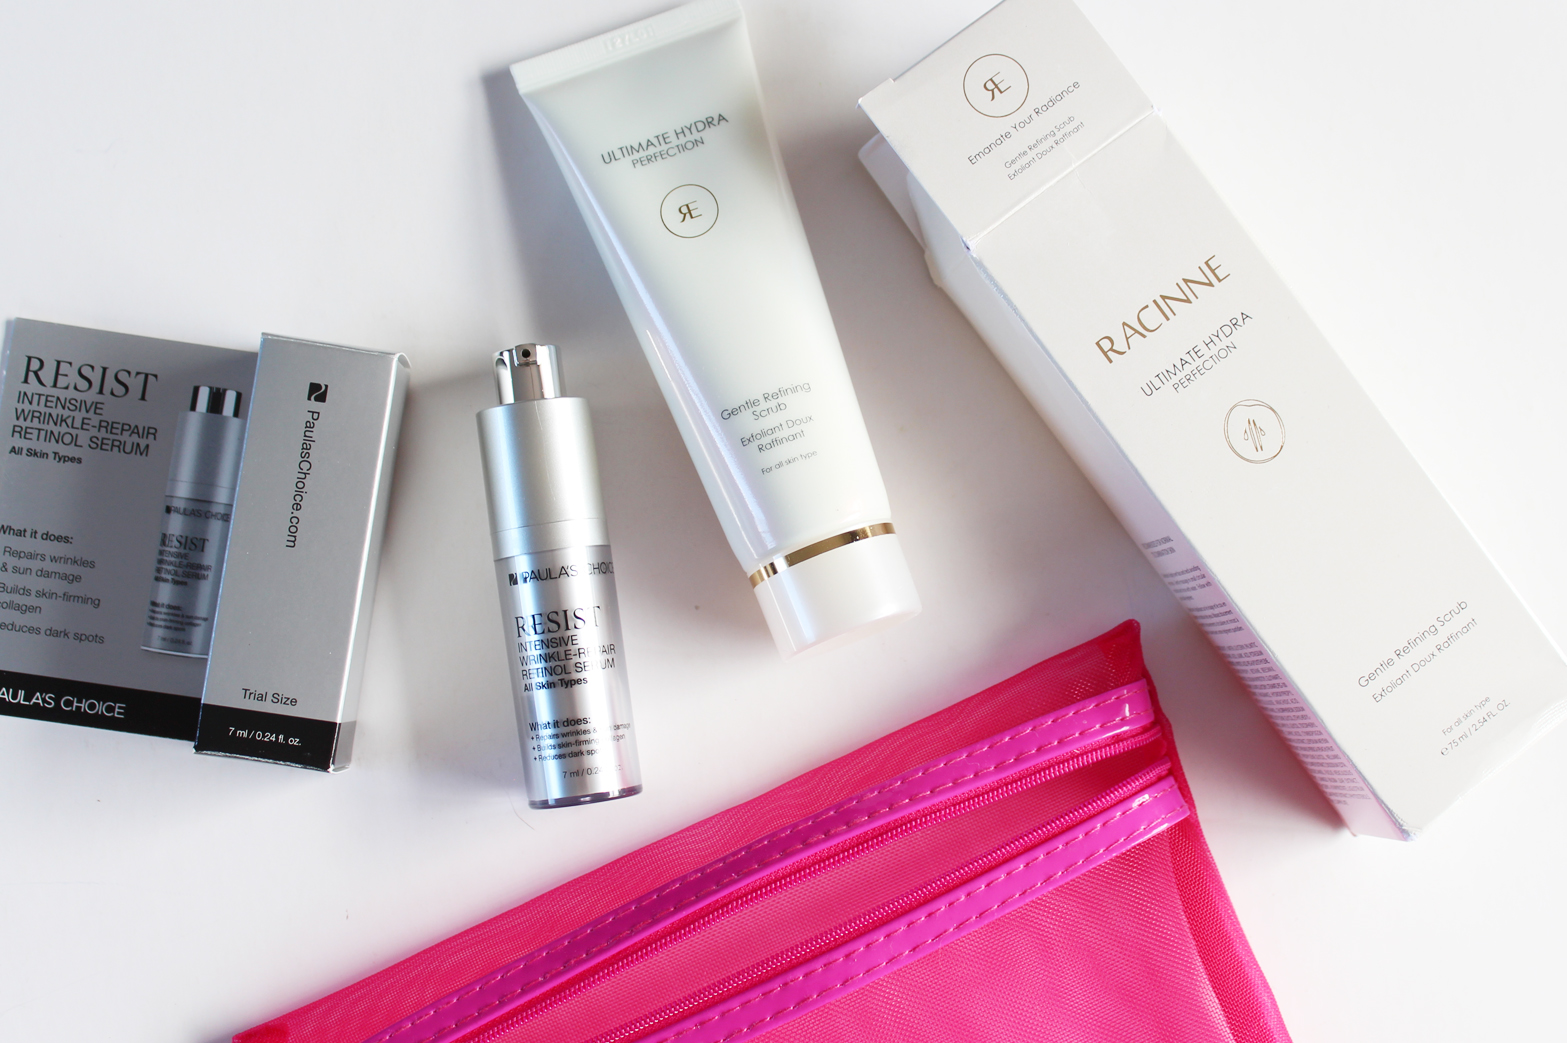 LUST HAVE IT   Women's Beauty Box June + July '15 - Unboxing + Initial Thoughts - CassandraMyee